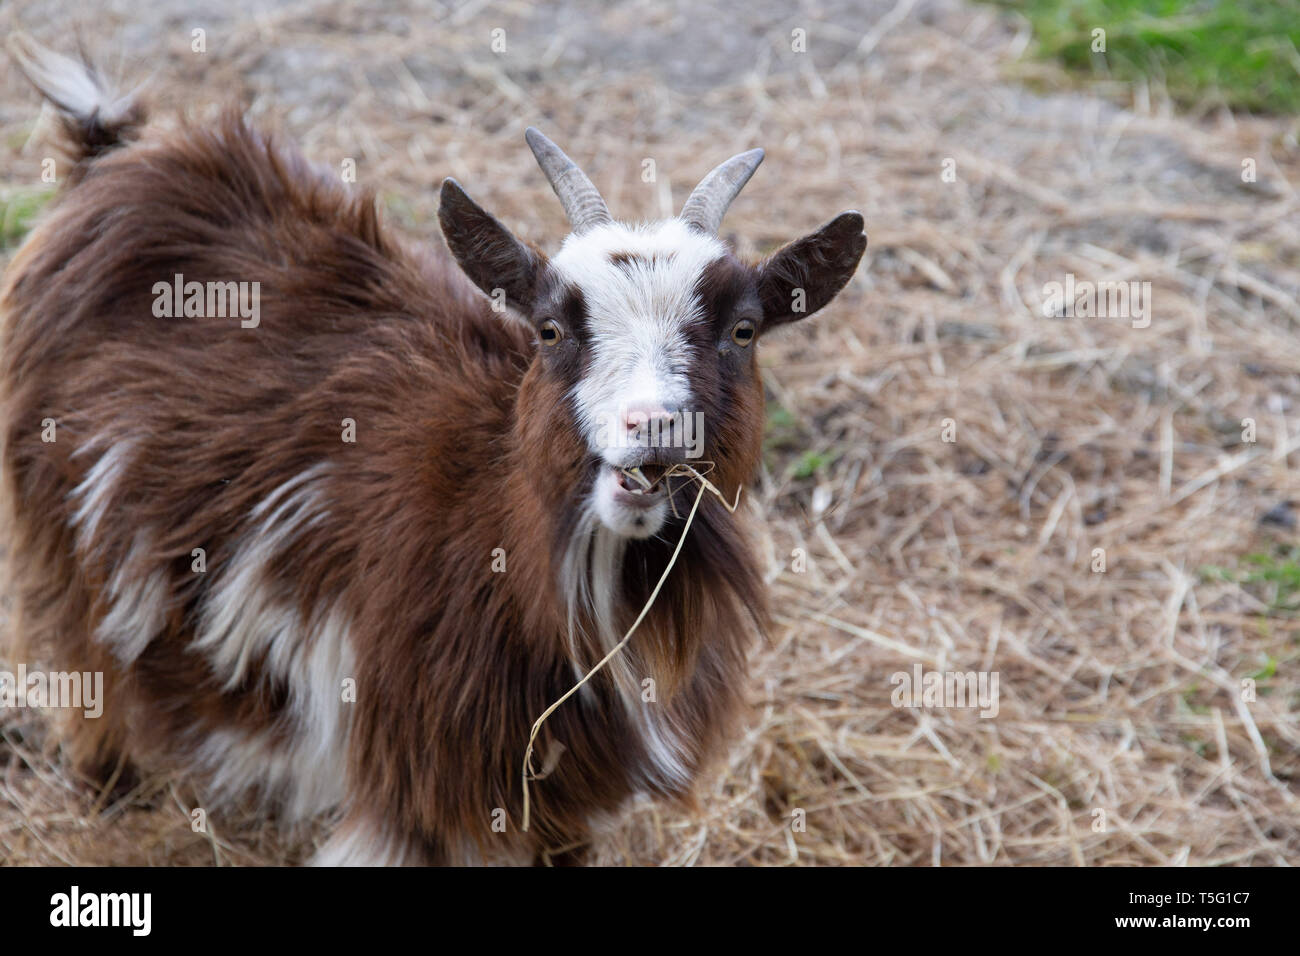 African Goat Breed Stock Photos & African Goat Breed Stock